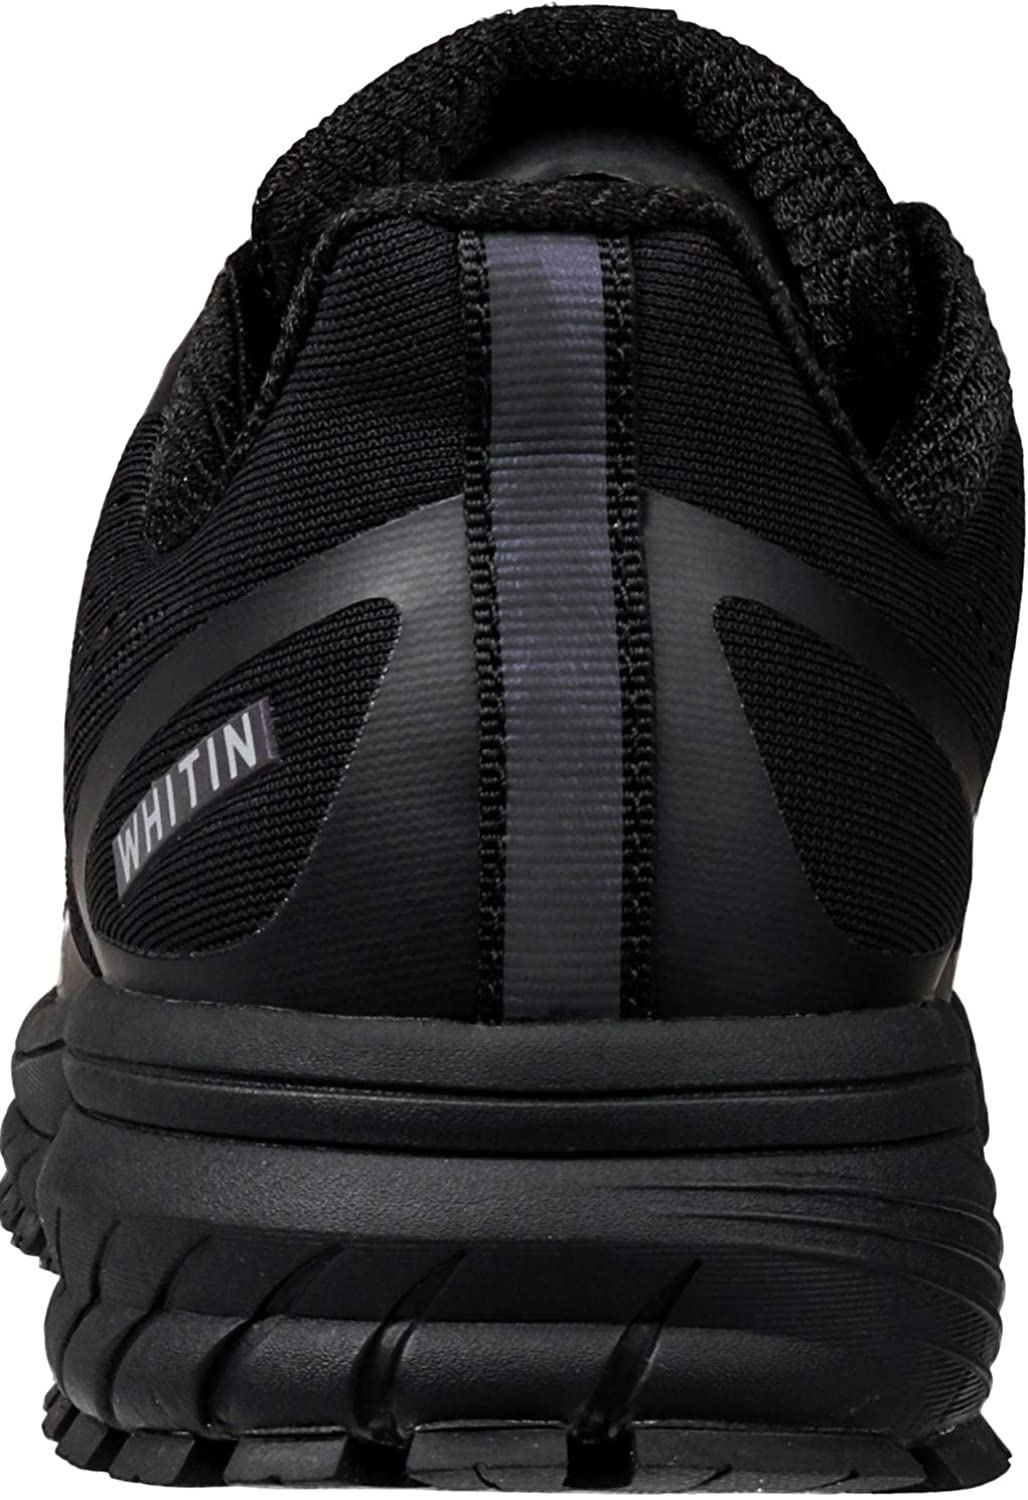 WHITIN Womens Supportive Running Shoes Lightweight Athletic Sneakers